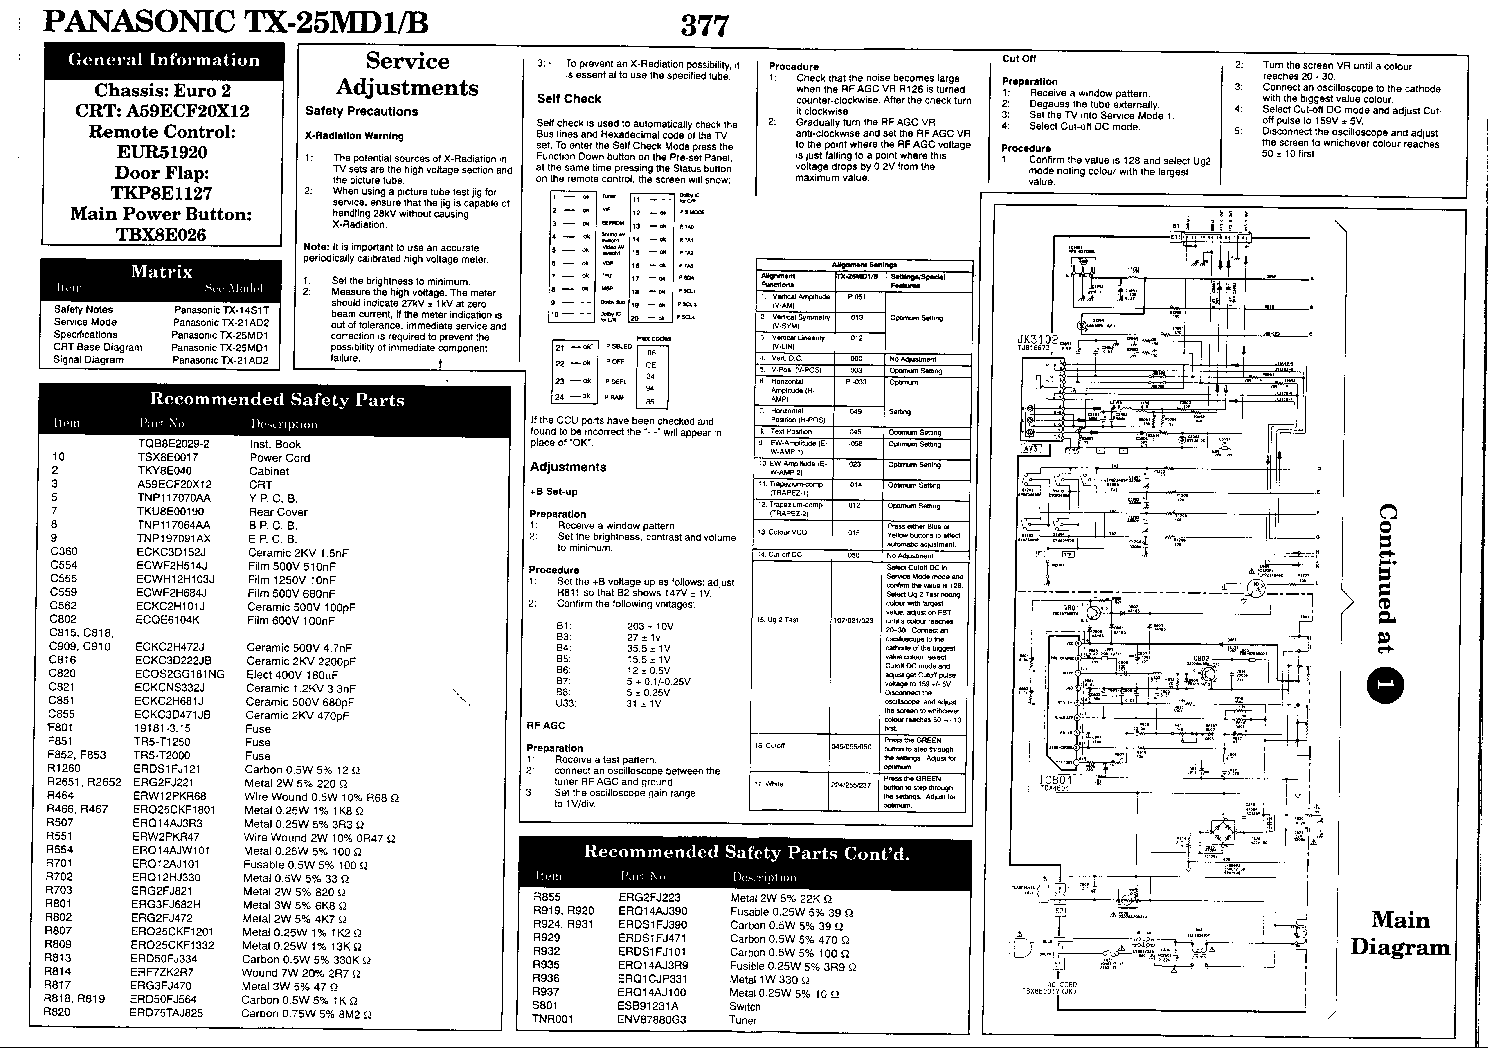 PANASONIC TX-29AS1C CH EURO4 Service Manual free download